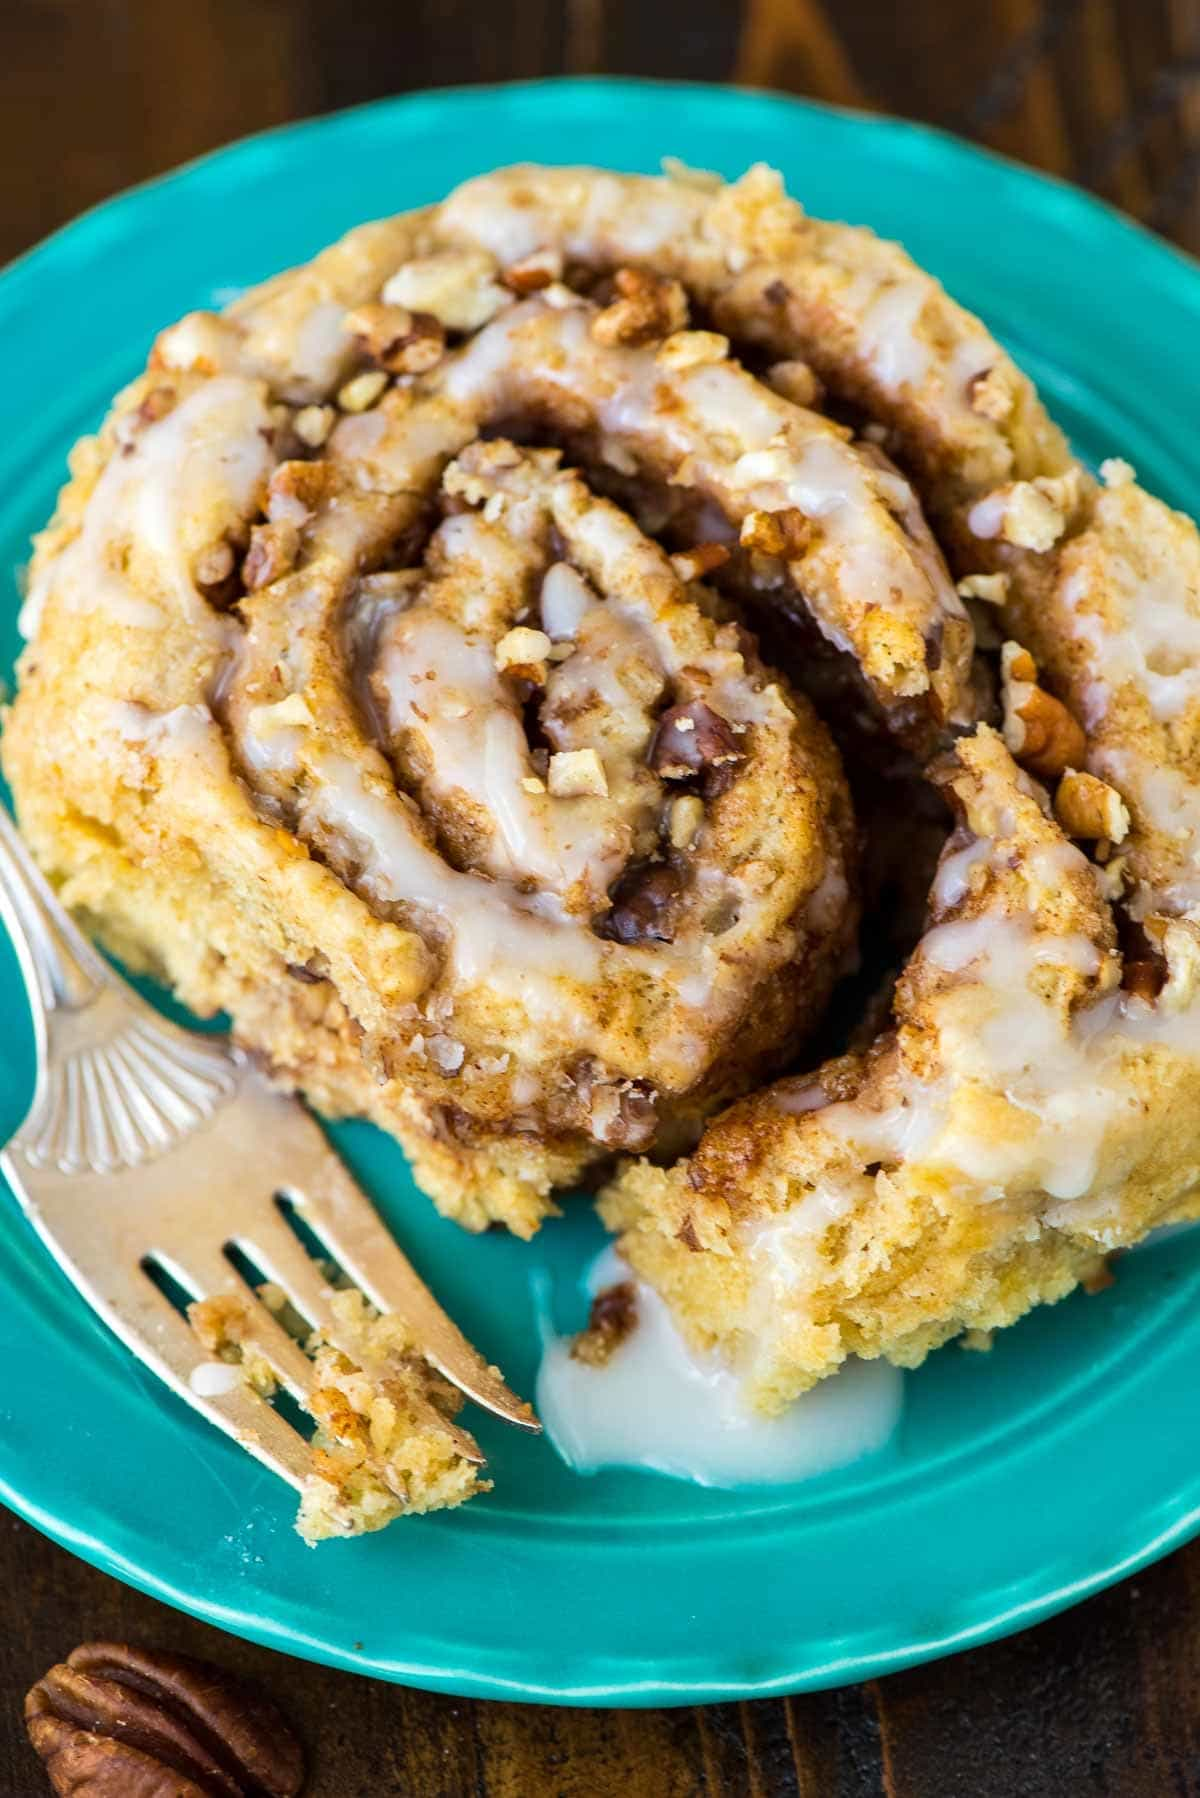 Biscuit Cinnamon Rolls – Easy recipe that uses biscuit dough, so there's no need to wait for them to rise! Soft and buttery with gooey cinnamon sugar filling and buttermilk glaze. Recipe at wellplated.com | @wellplated